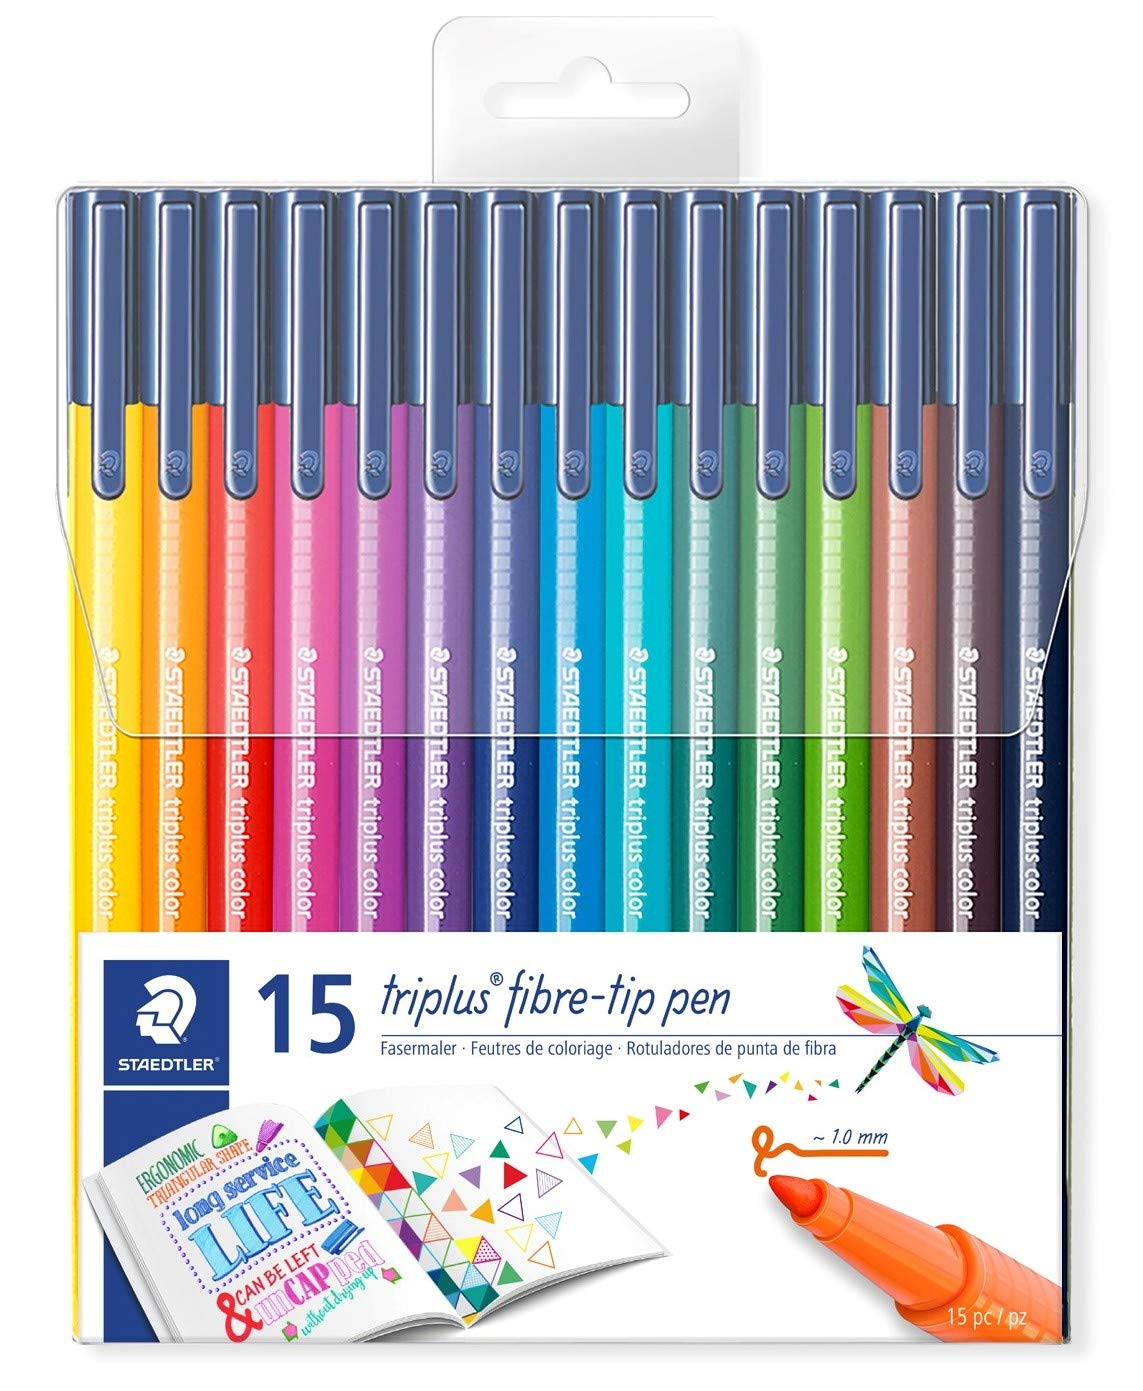 Staedtler 323 TB26  Filzstifte triplus color 26 er Set